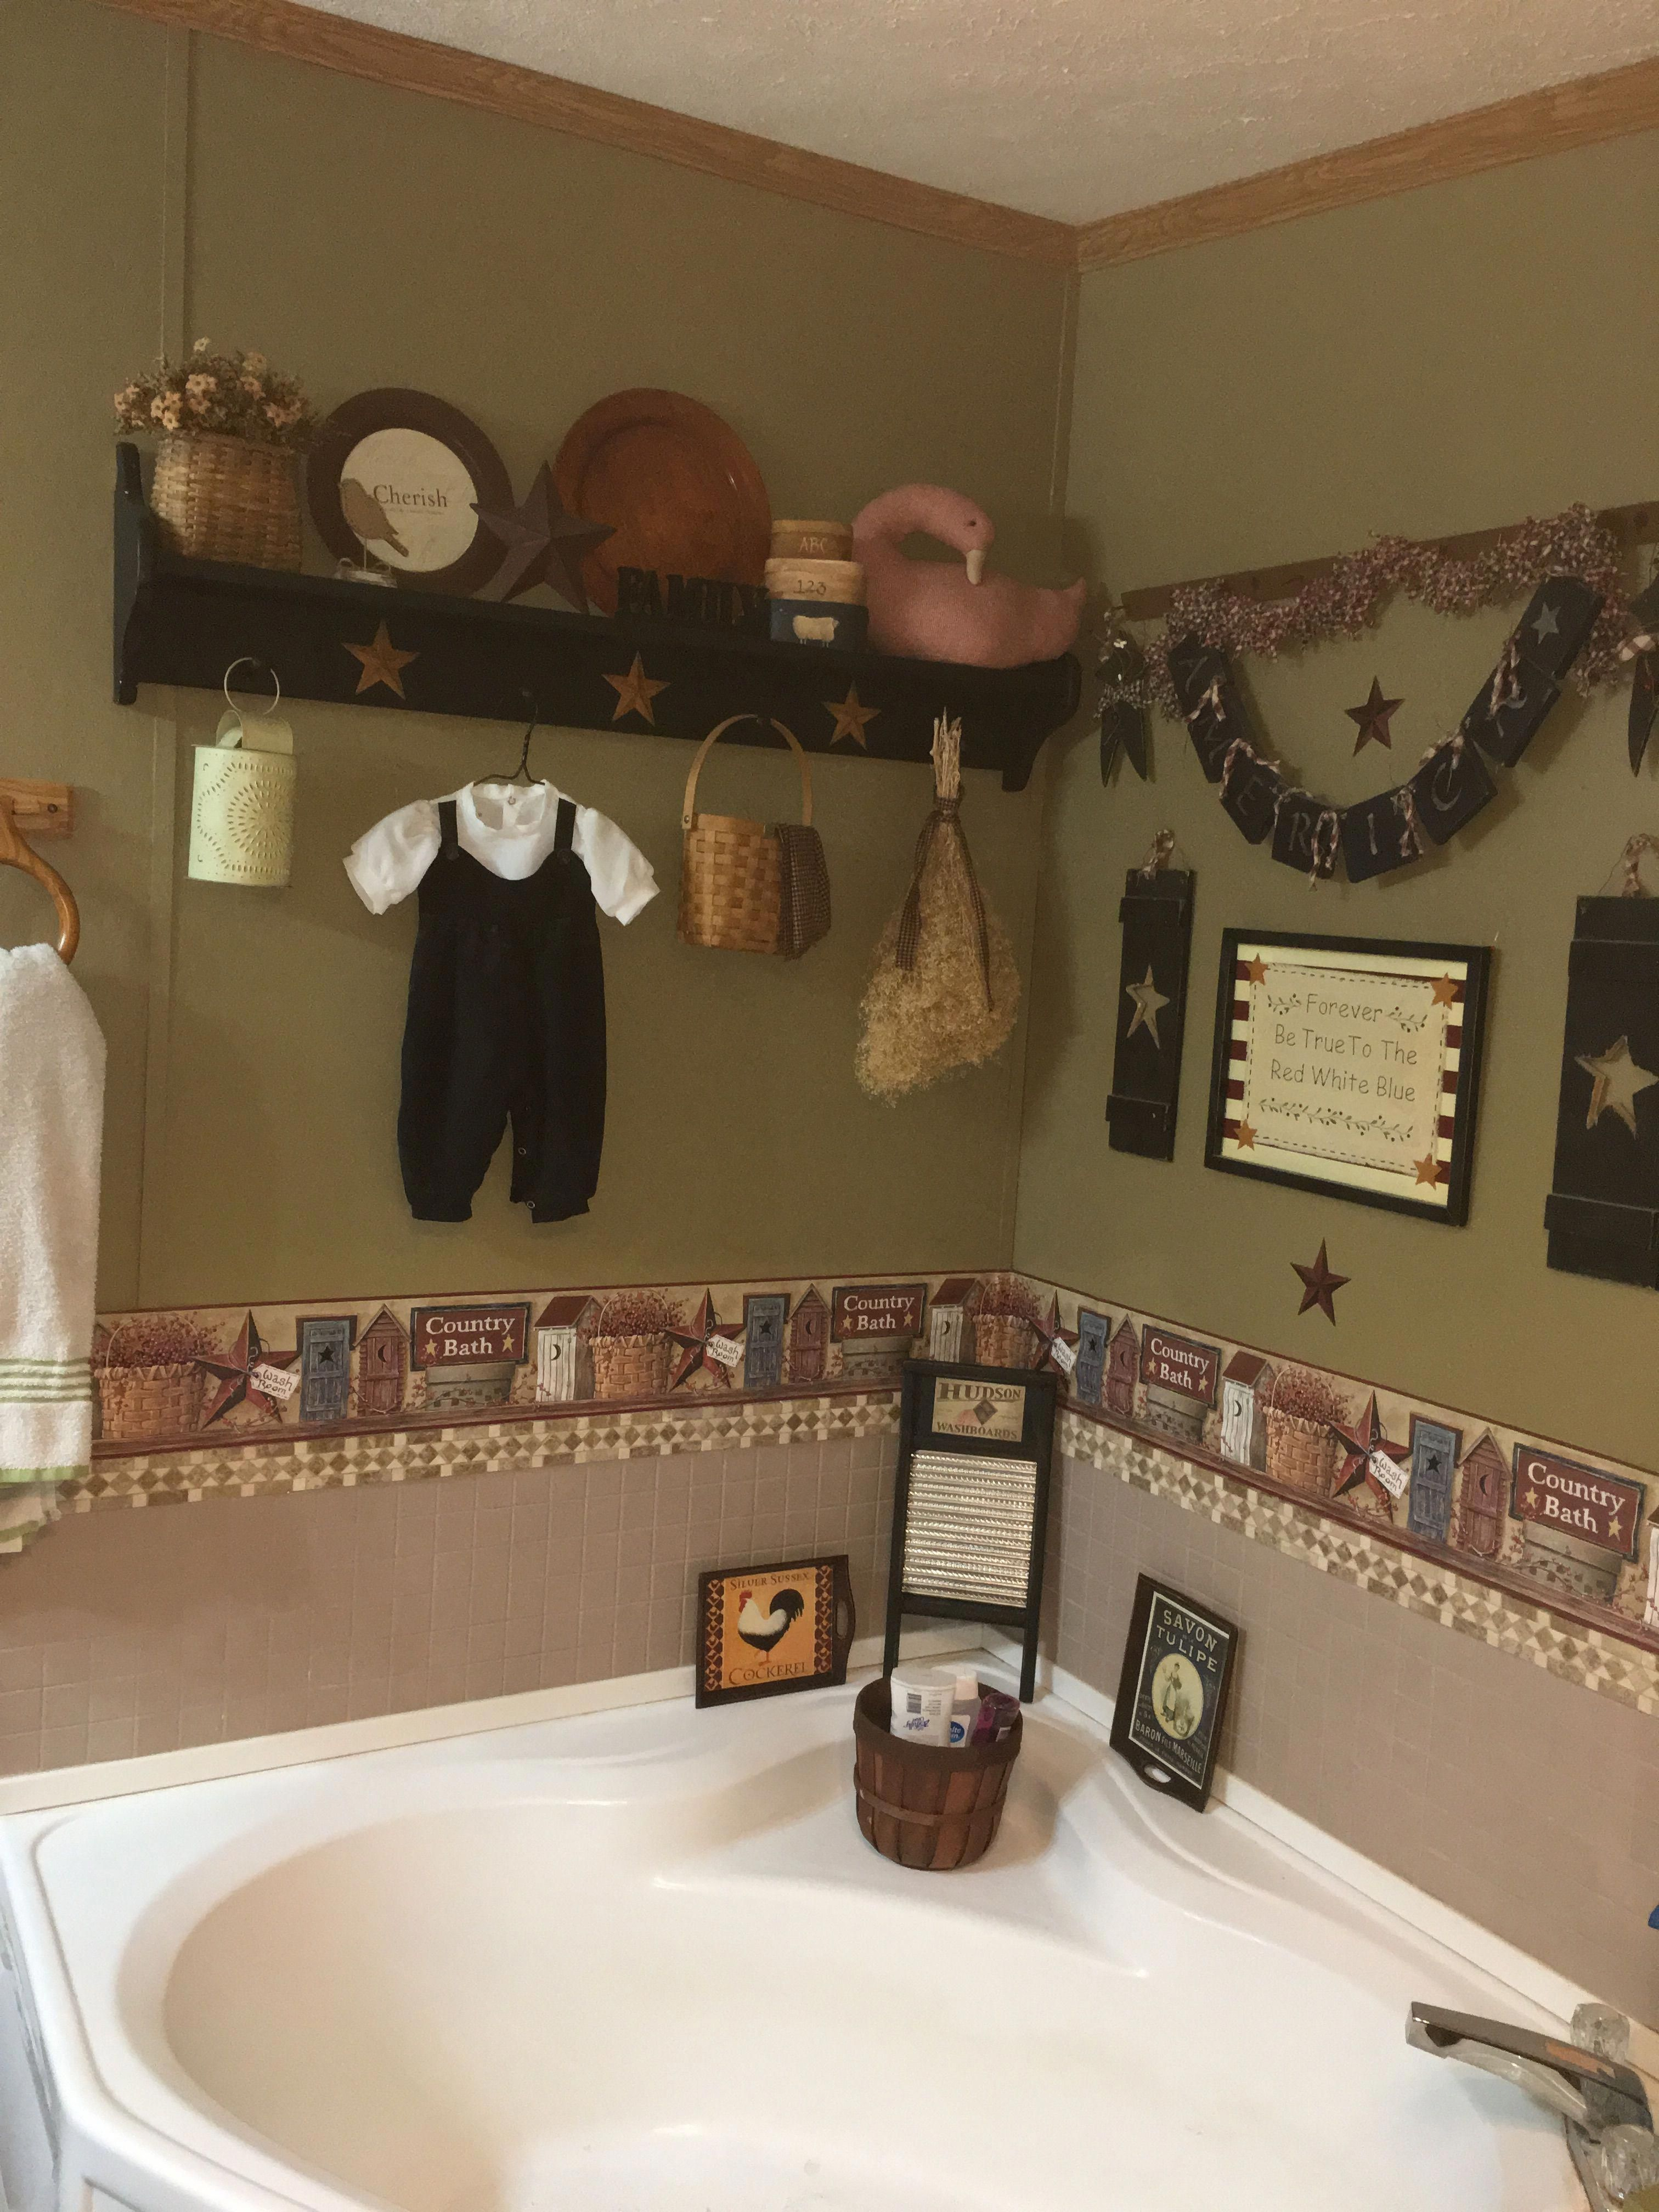 Primitive Country Decorating For The Kitchen Primitivecountrydecorating Primitive Bathrooms Primitive Country Bathrooms Country Bathroom Decor